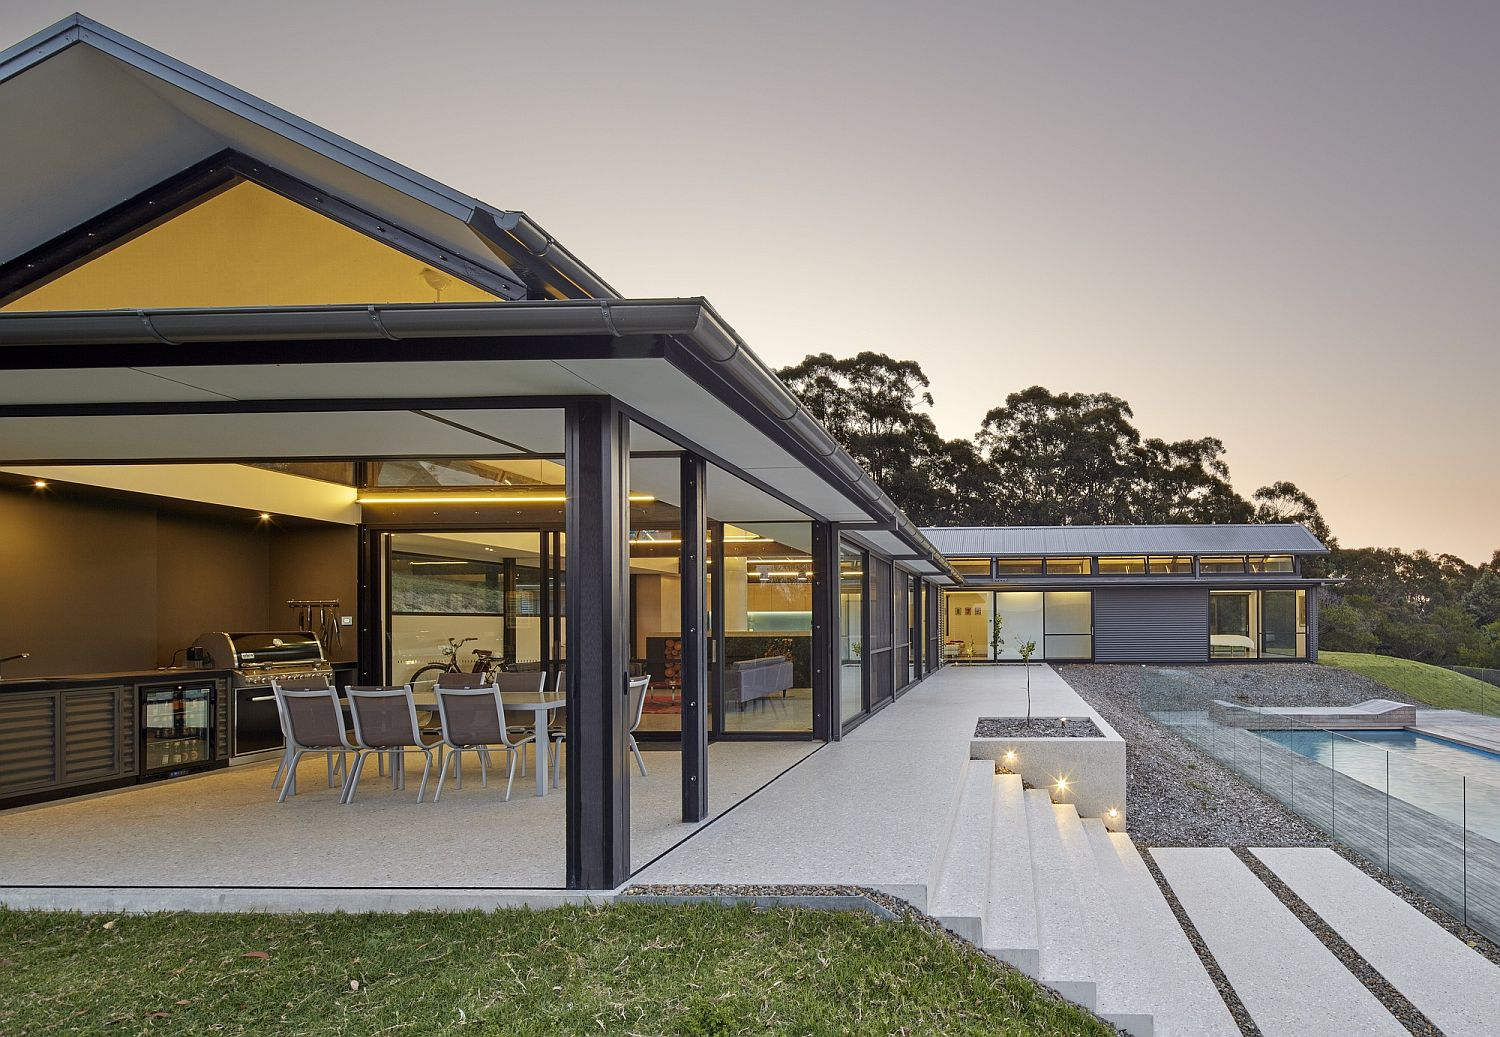 Open pavilions and pool deck of the sustainable Aussie home